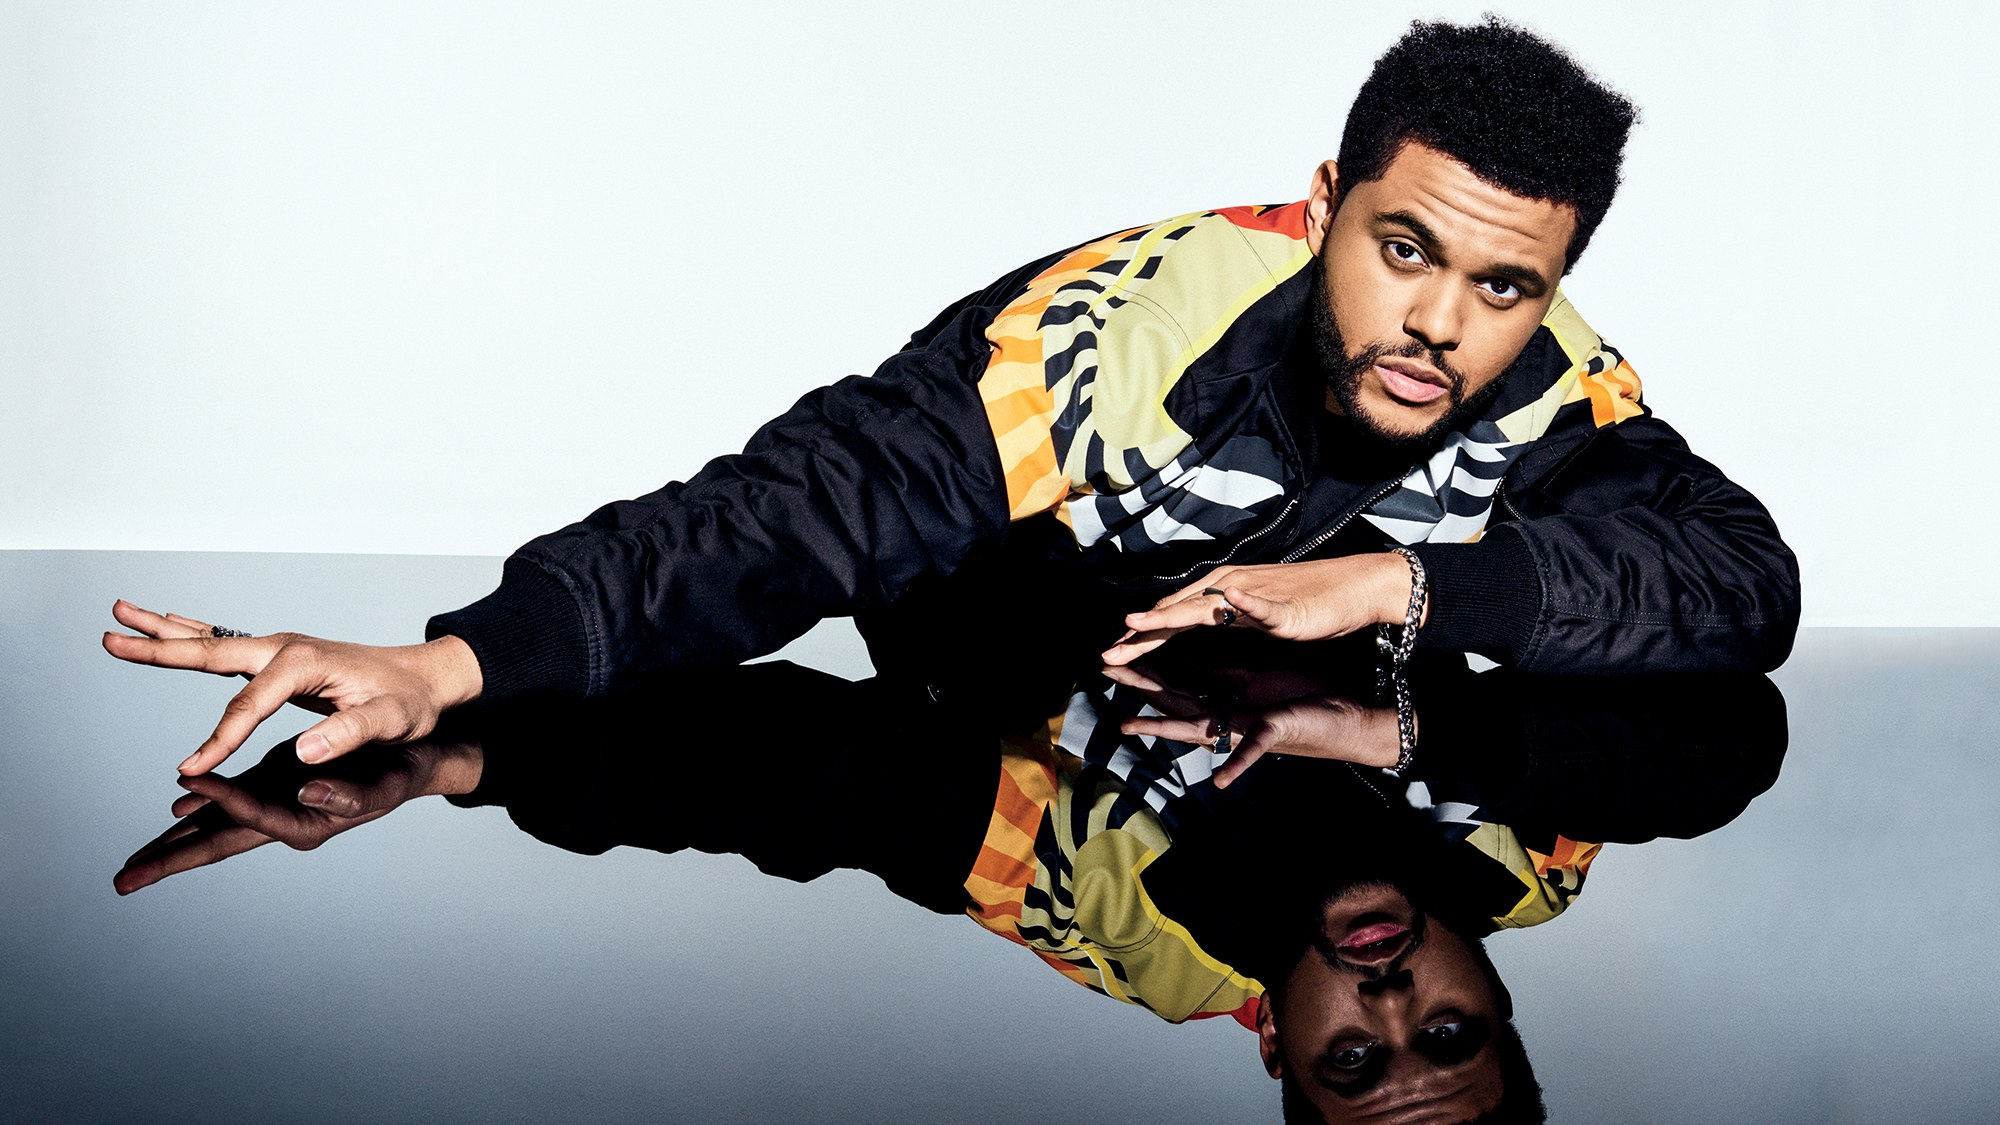 The Weeknd Hairstyle Wallpaper 65712 2000x1125px